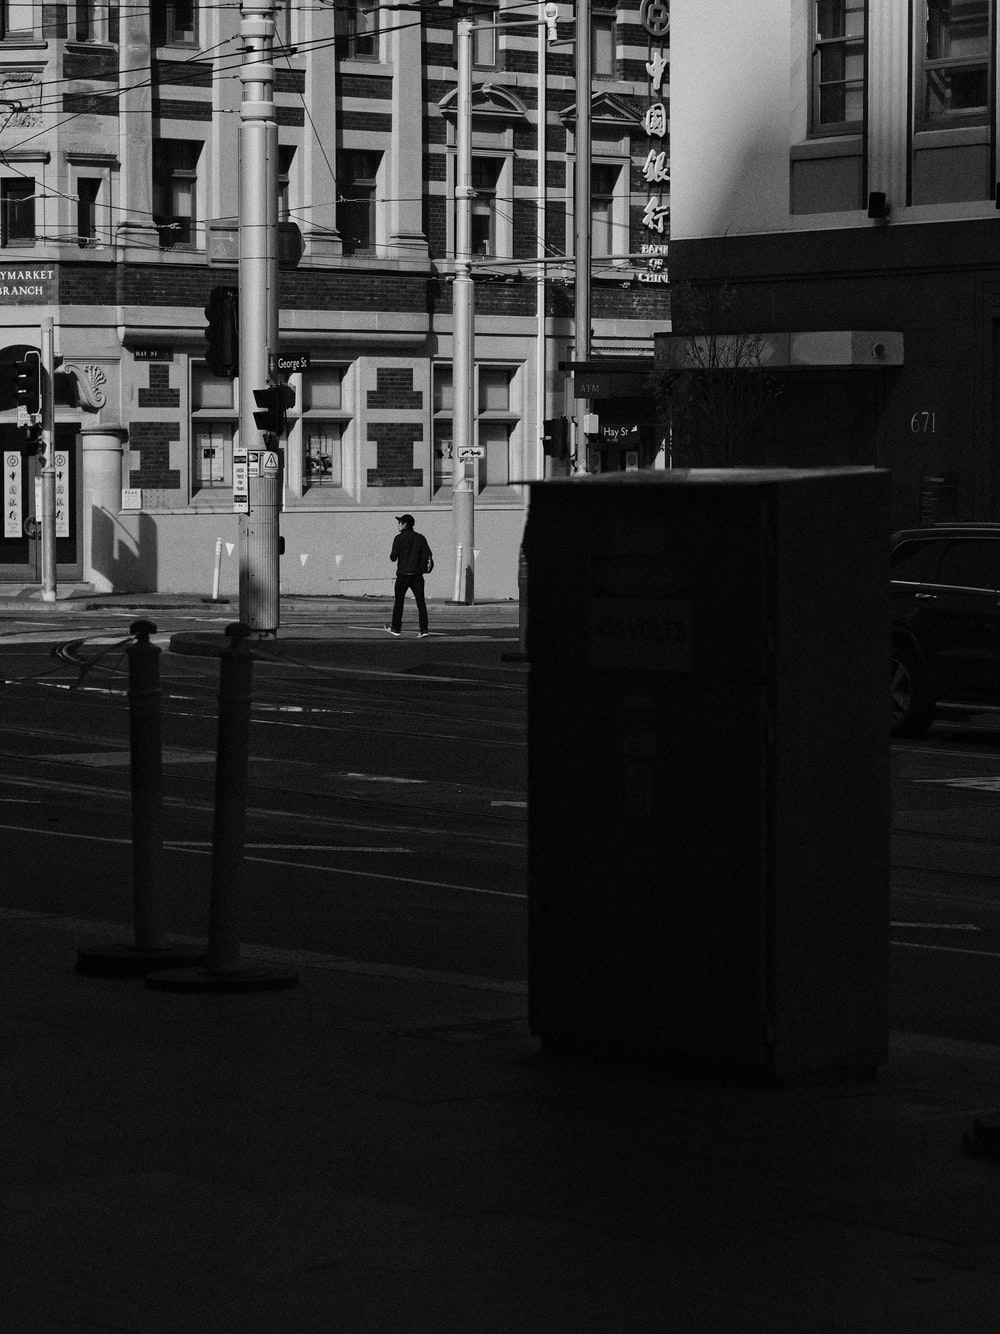 grayscale photography of person walking on road